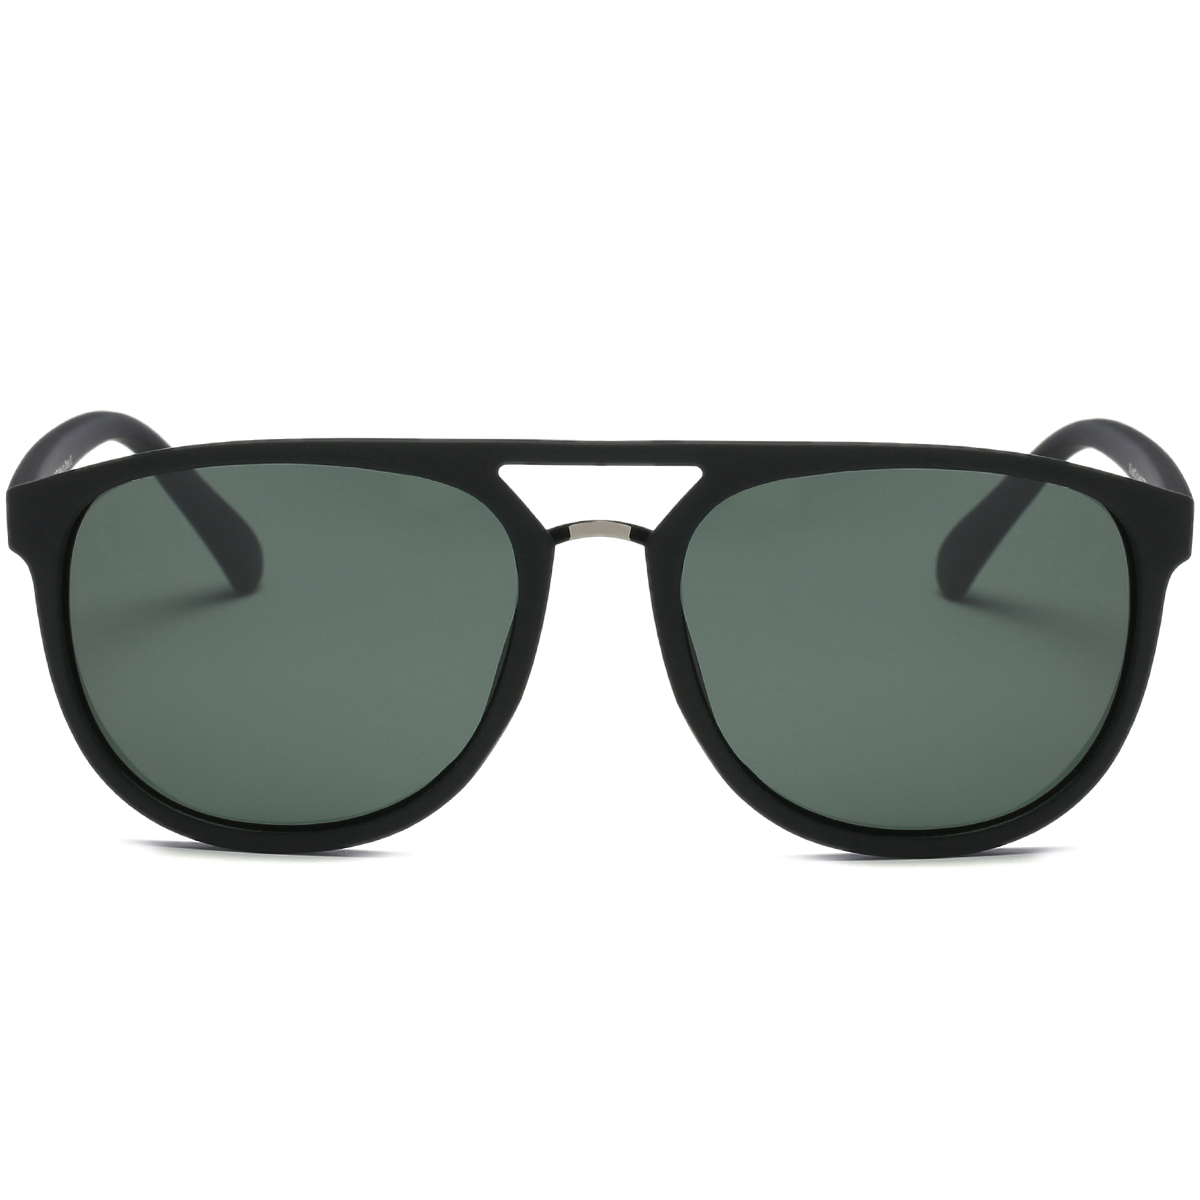 Matte Finish Wayfarer Round Sunglasses